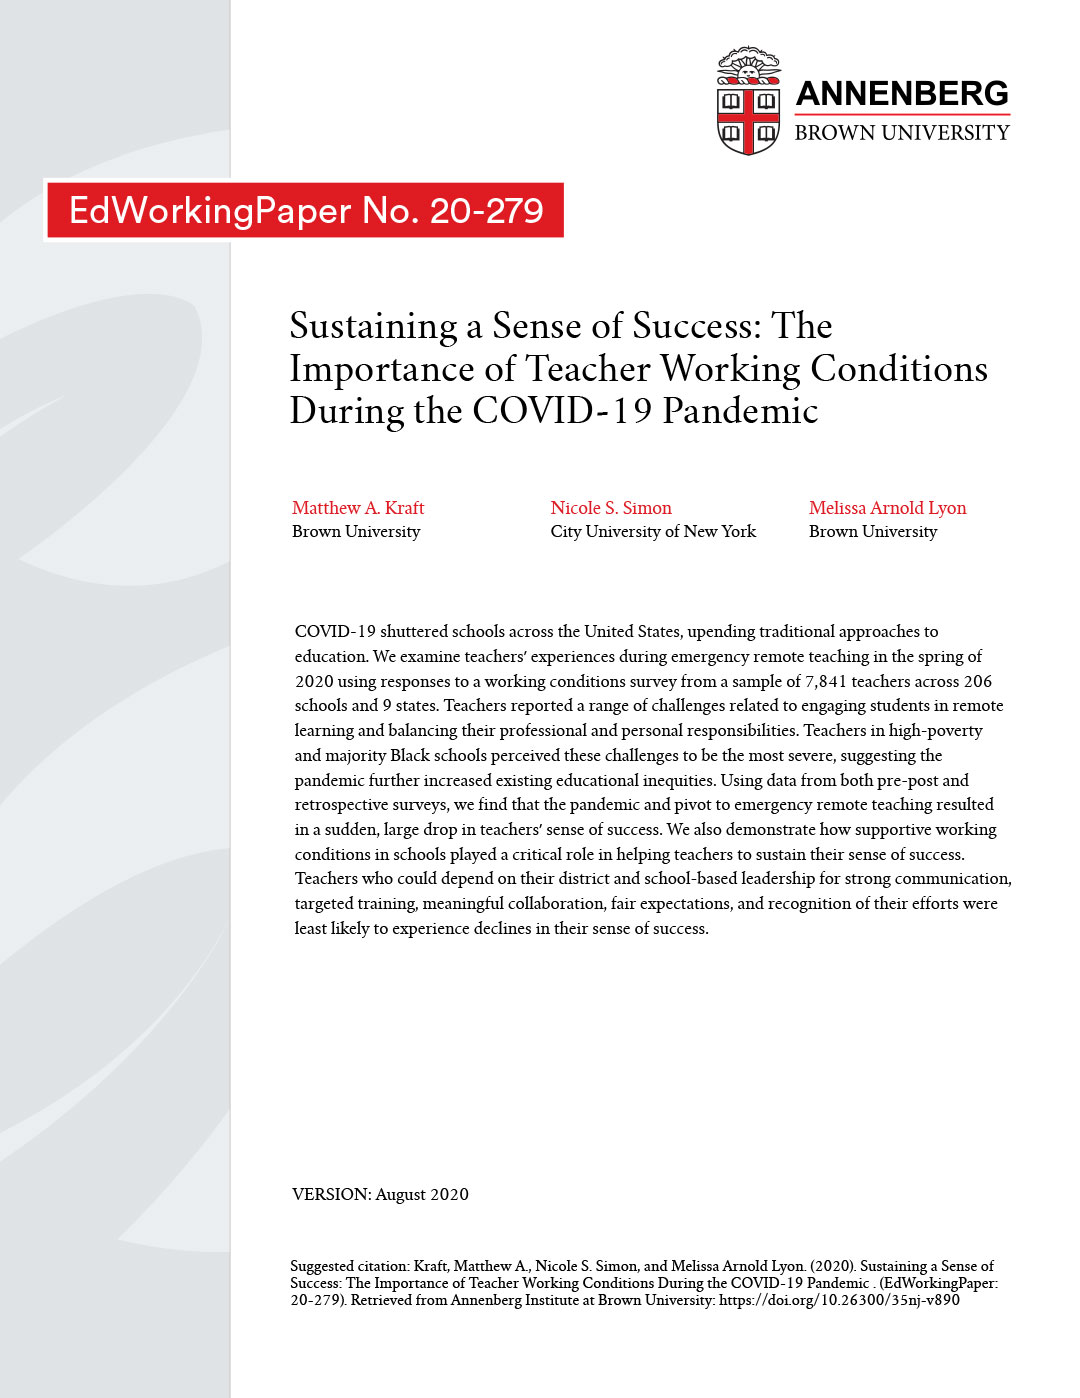 Sustaining a Sense of Success: The Importance of Teacher Working Conditions During the COVID-19 Pandemic